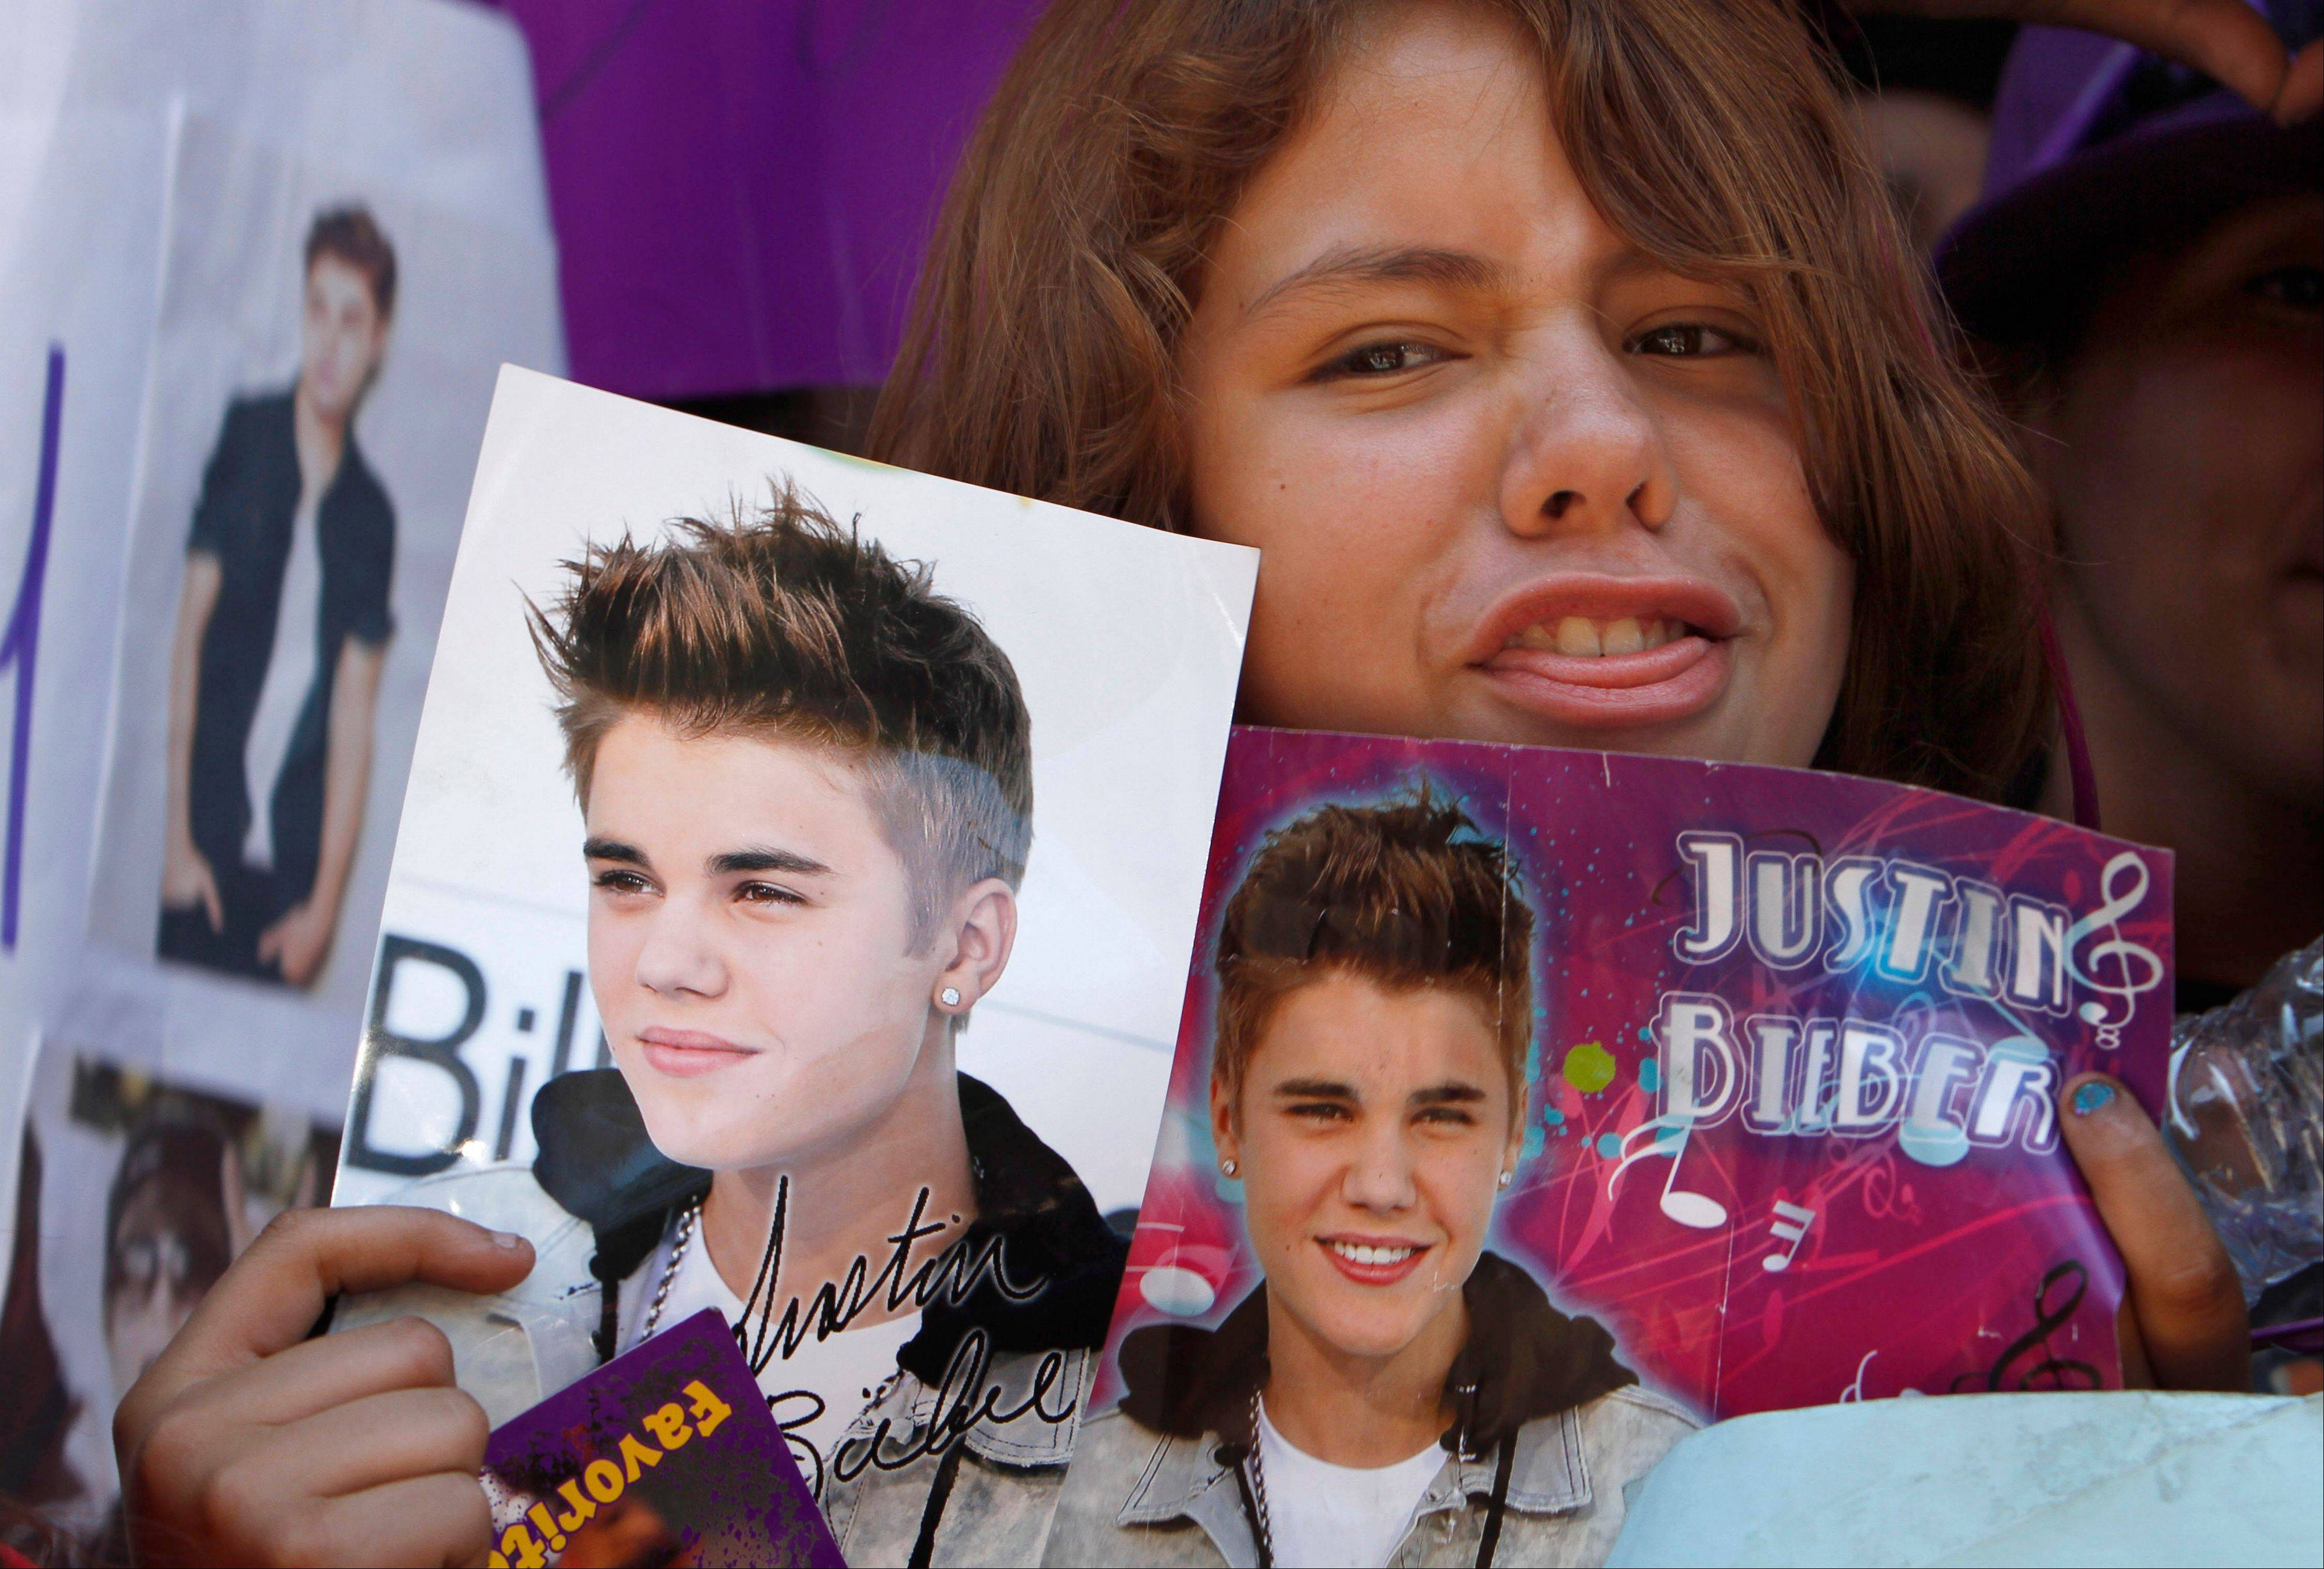 A fan holds images of pop star Justin Bieber in Mexico City's main historic plaza.